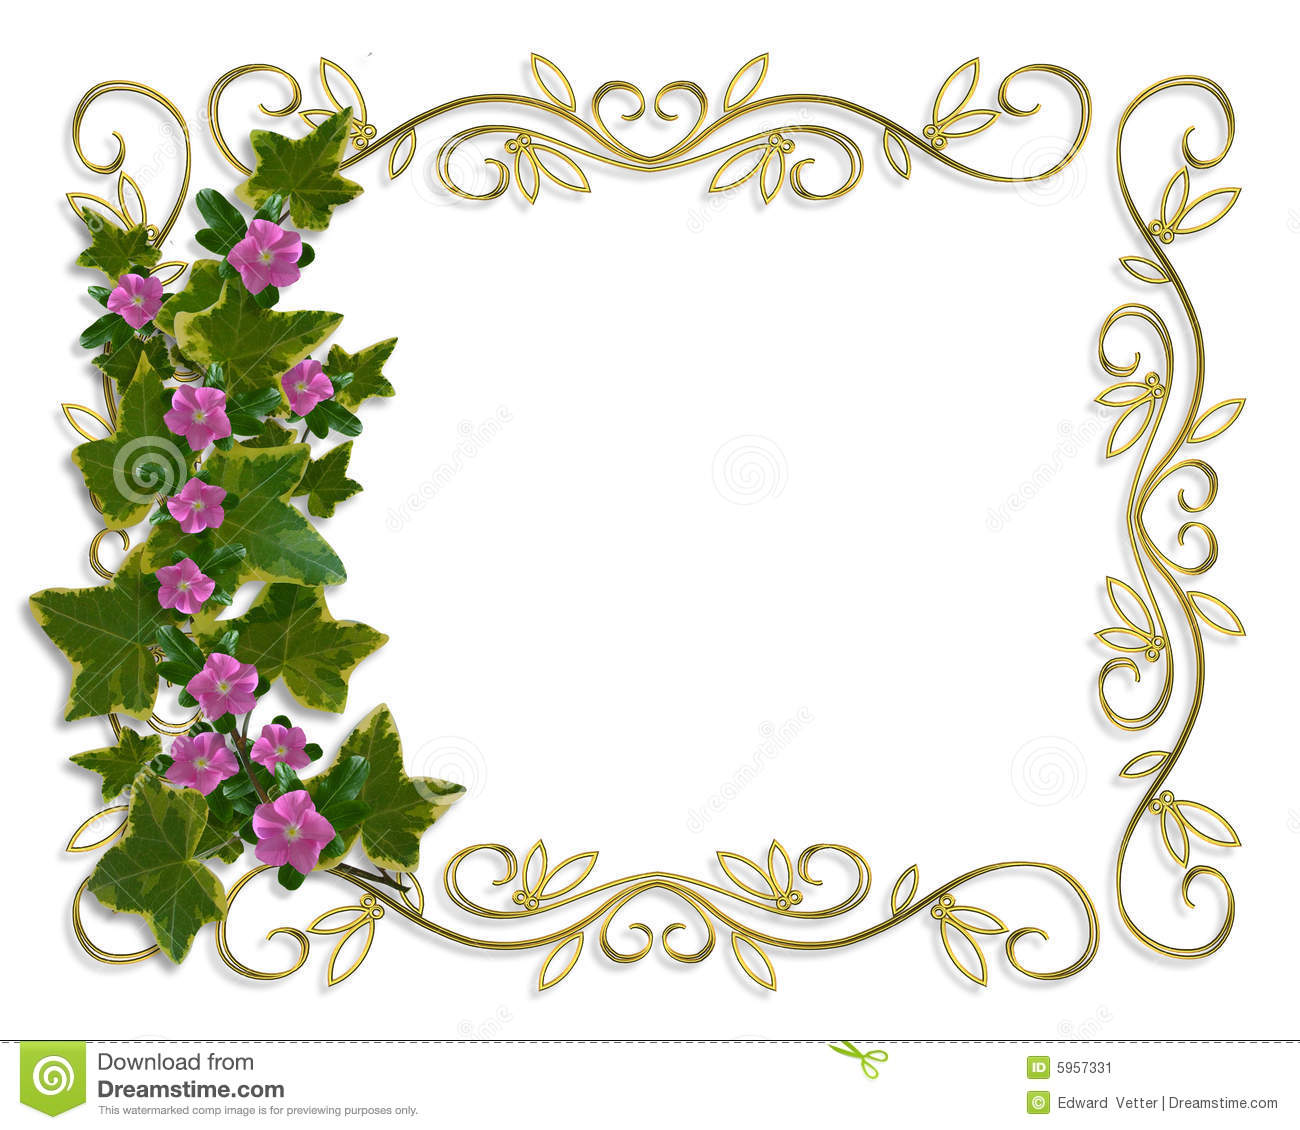 17 frame border design images islamic borders and frames Vintage Floral Vector Clip Art Vintage Clip Art Flower Vine